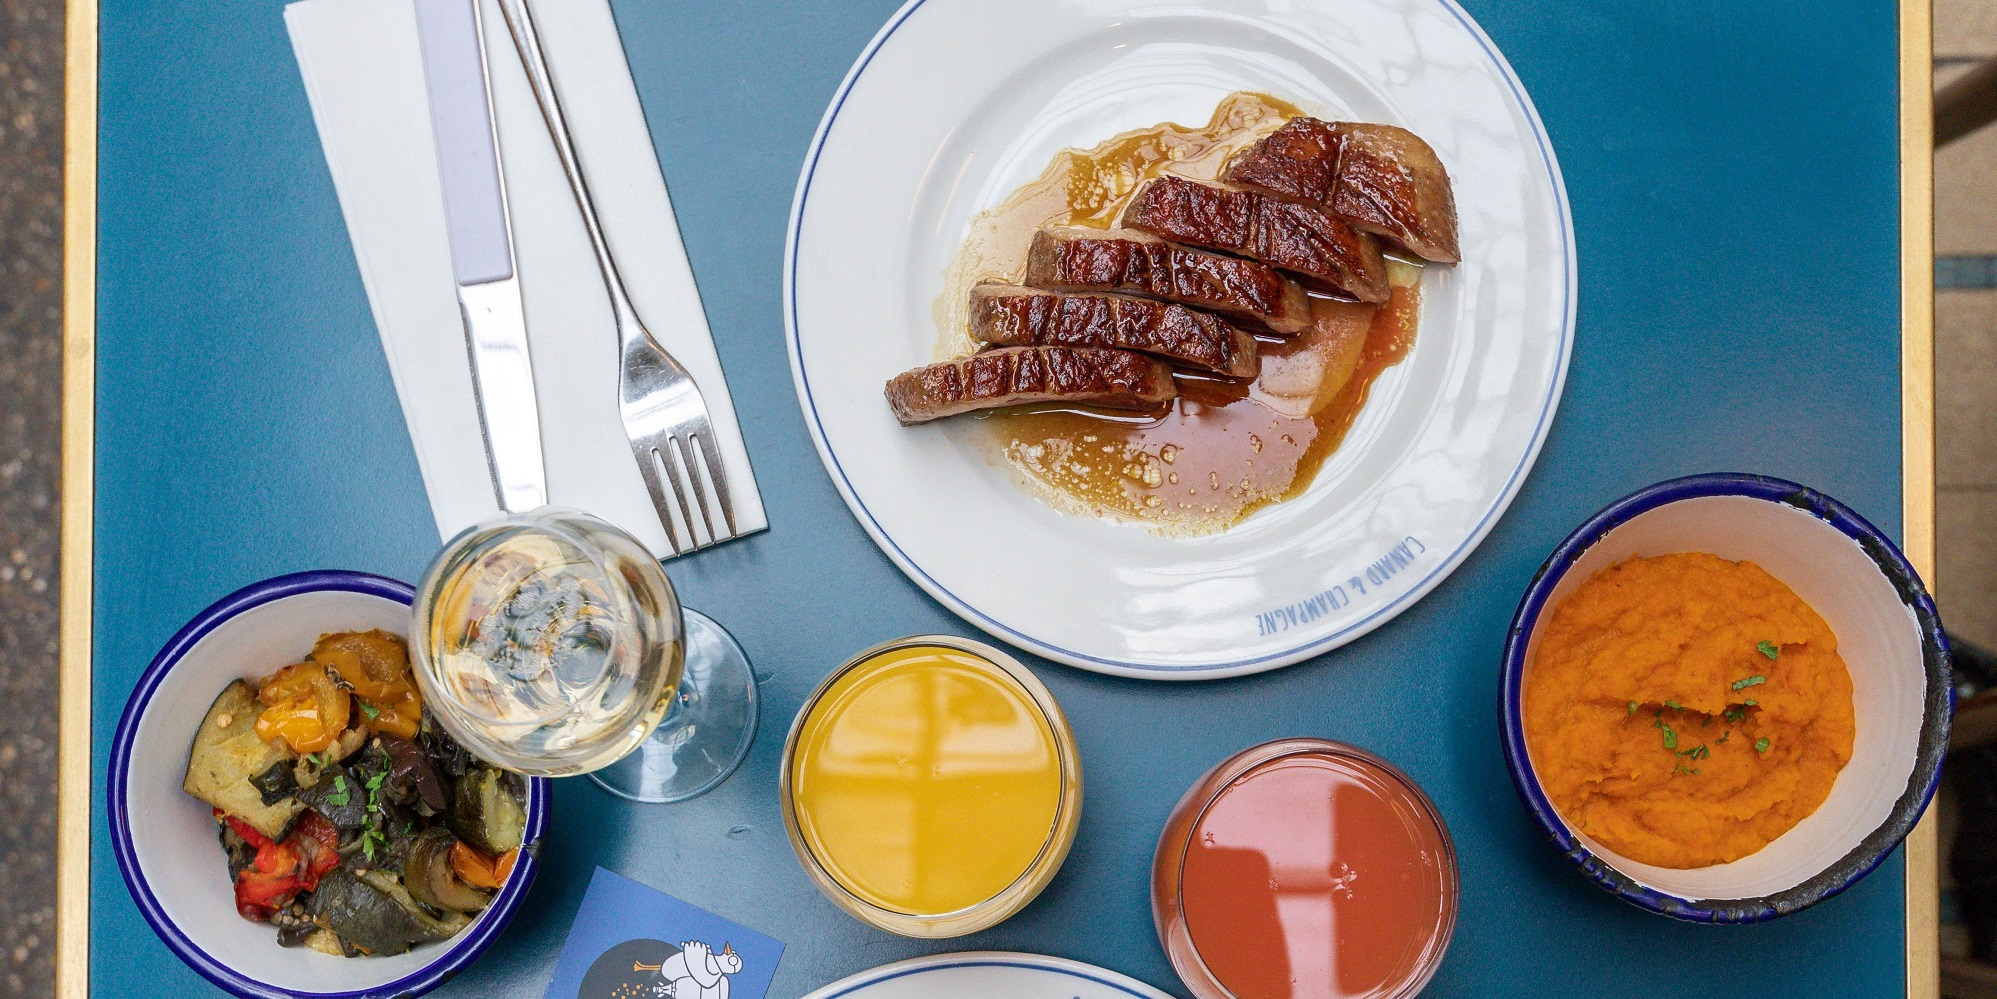 Brunch Canard et champagne (75002 Paris)